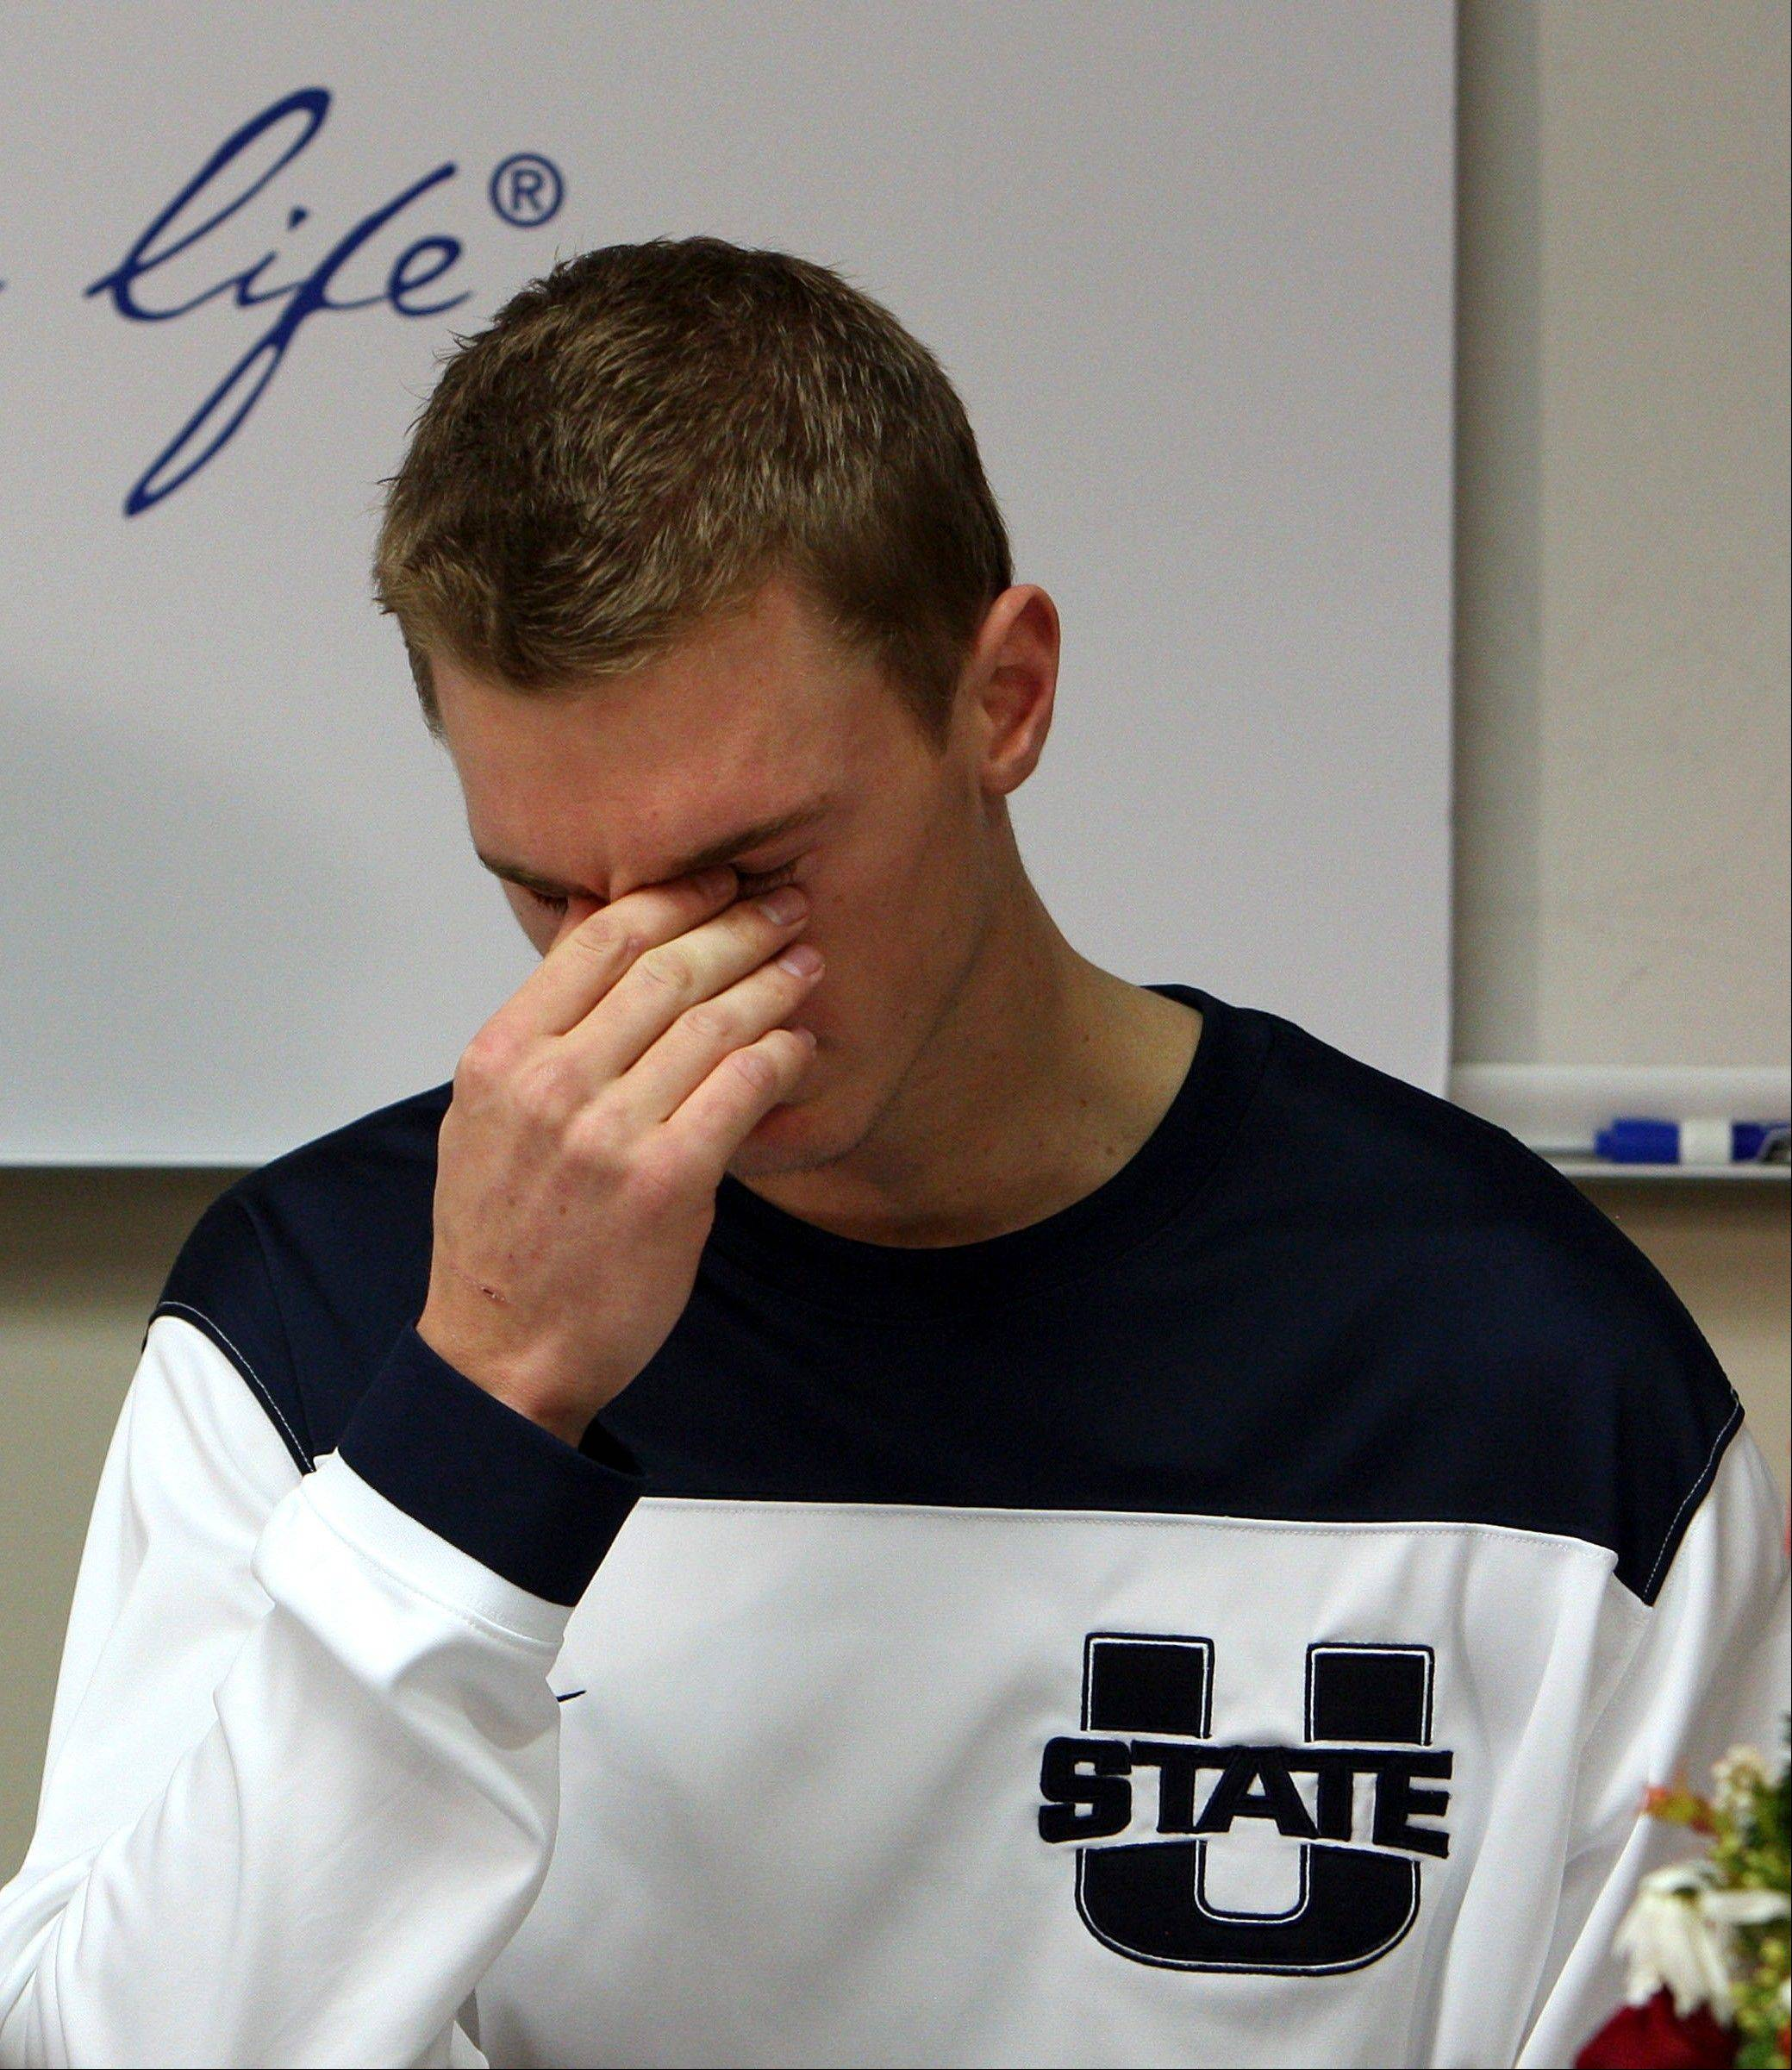 Utah State basketball player Danny Berger becomes emotional as he speaks with reporters about his recovery at Intermountain Medical Center in Murray, Utah. Berger collapsed during NCAA college basketball practice and went into cardiac arrest, resulting in a defibrillator being implanted in his chest.